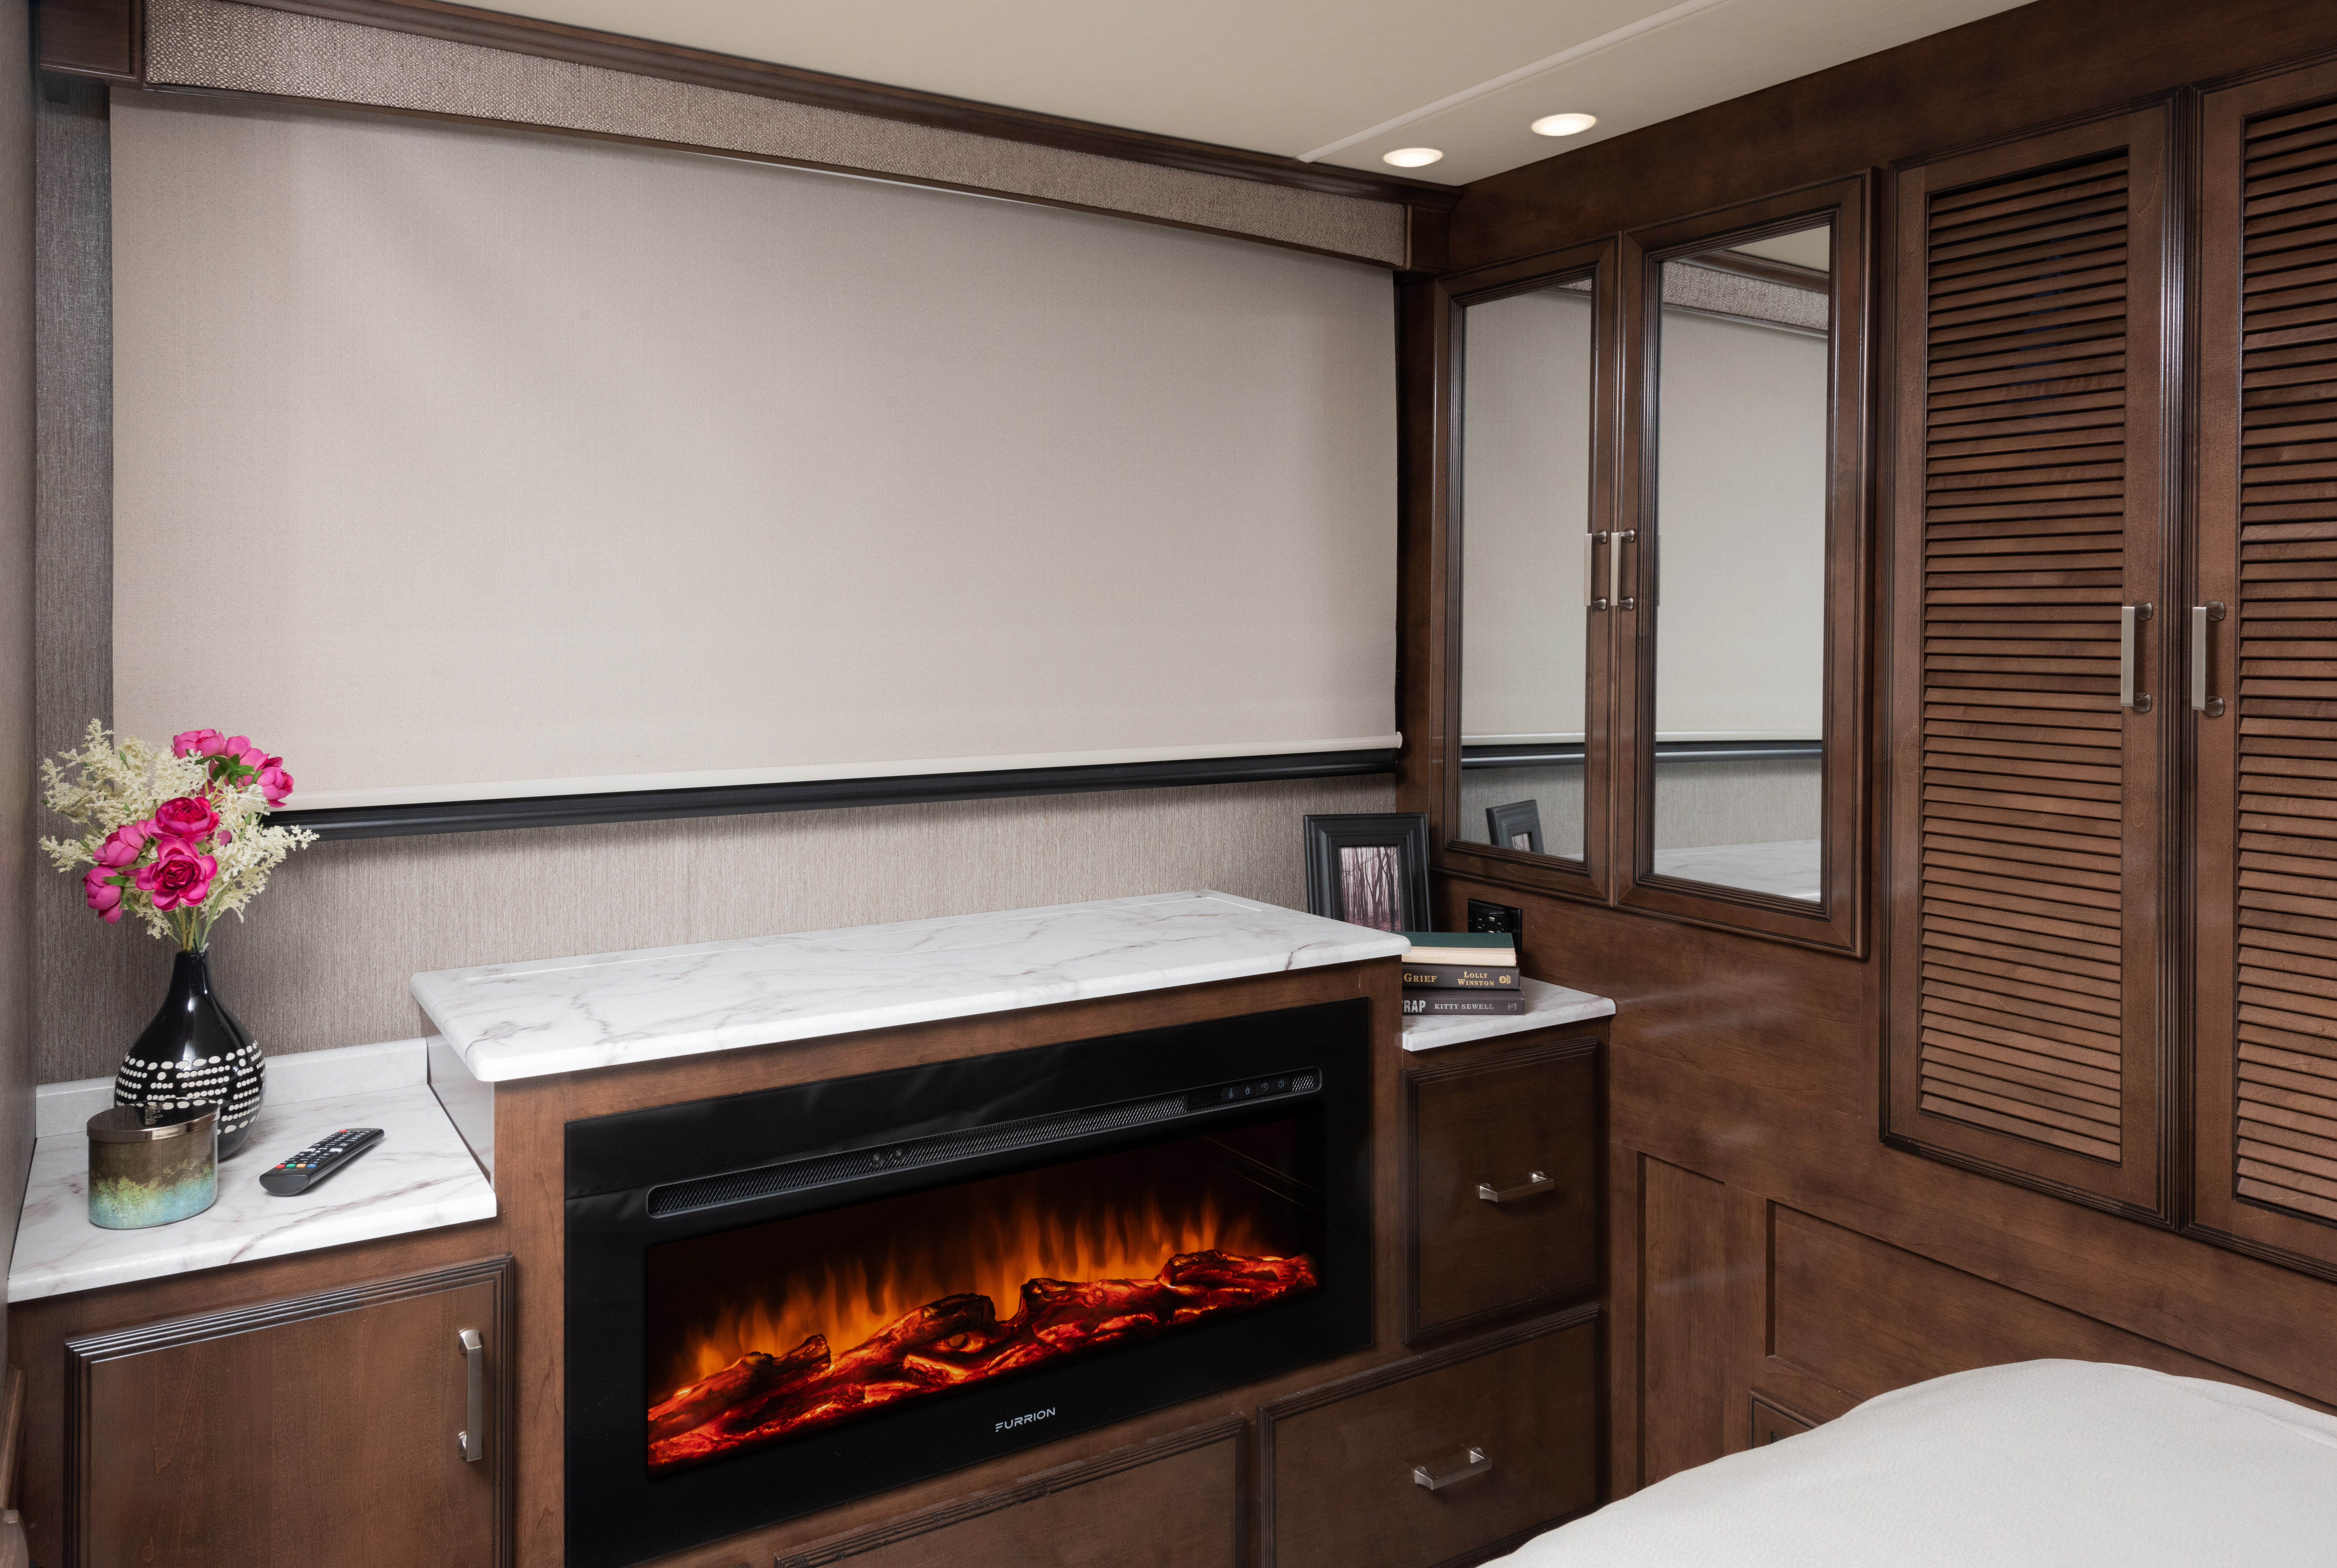 Pace Arrow 33D Vapor Decor with Oxford Cabinetry